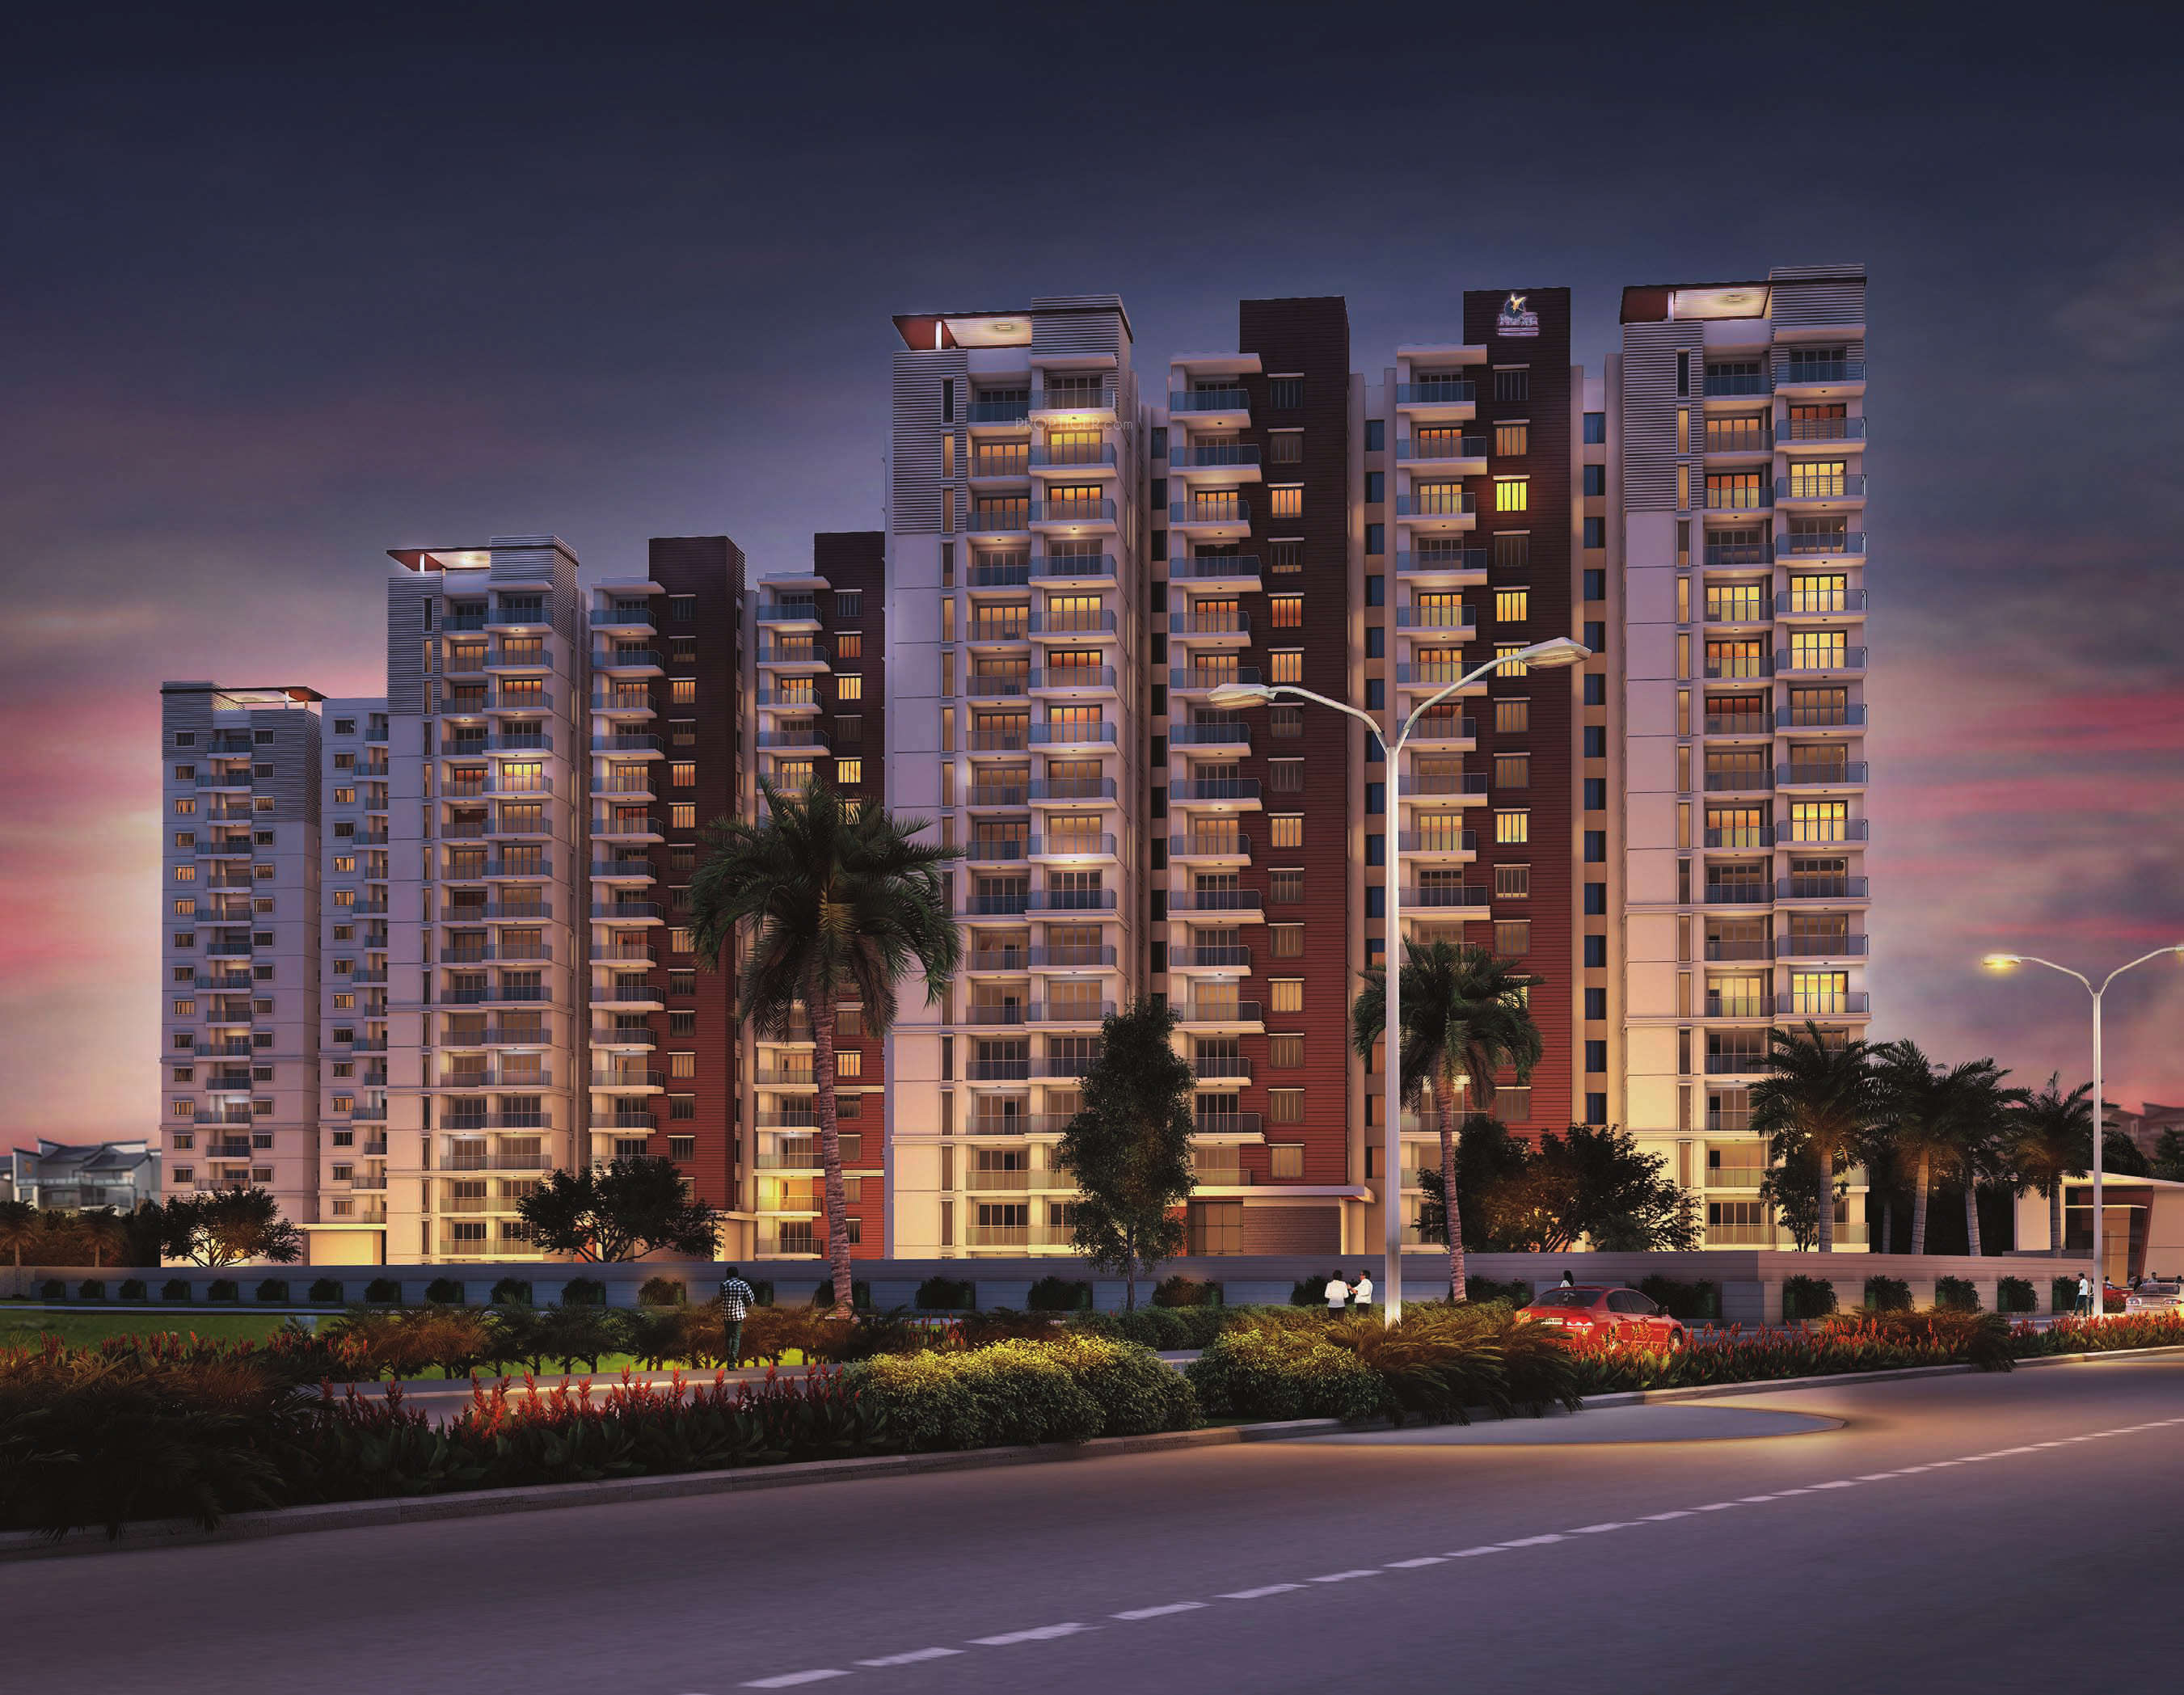 1355 sq ft 2 BHK 2T Apartment for Sale in Prestige Group Ivy